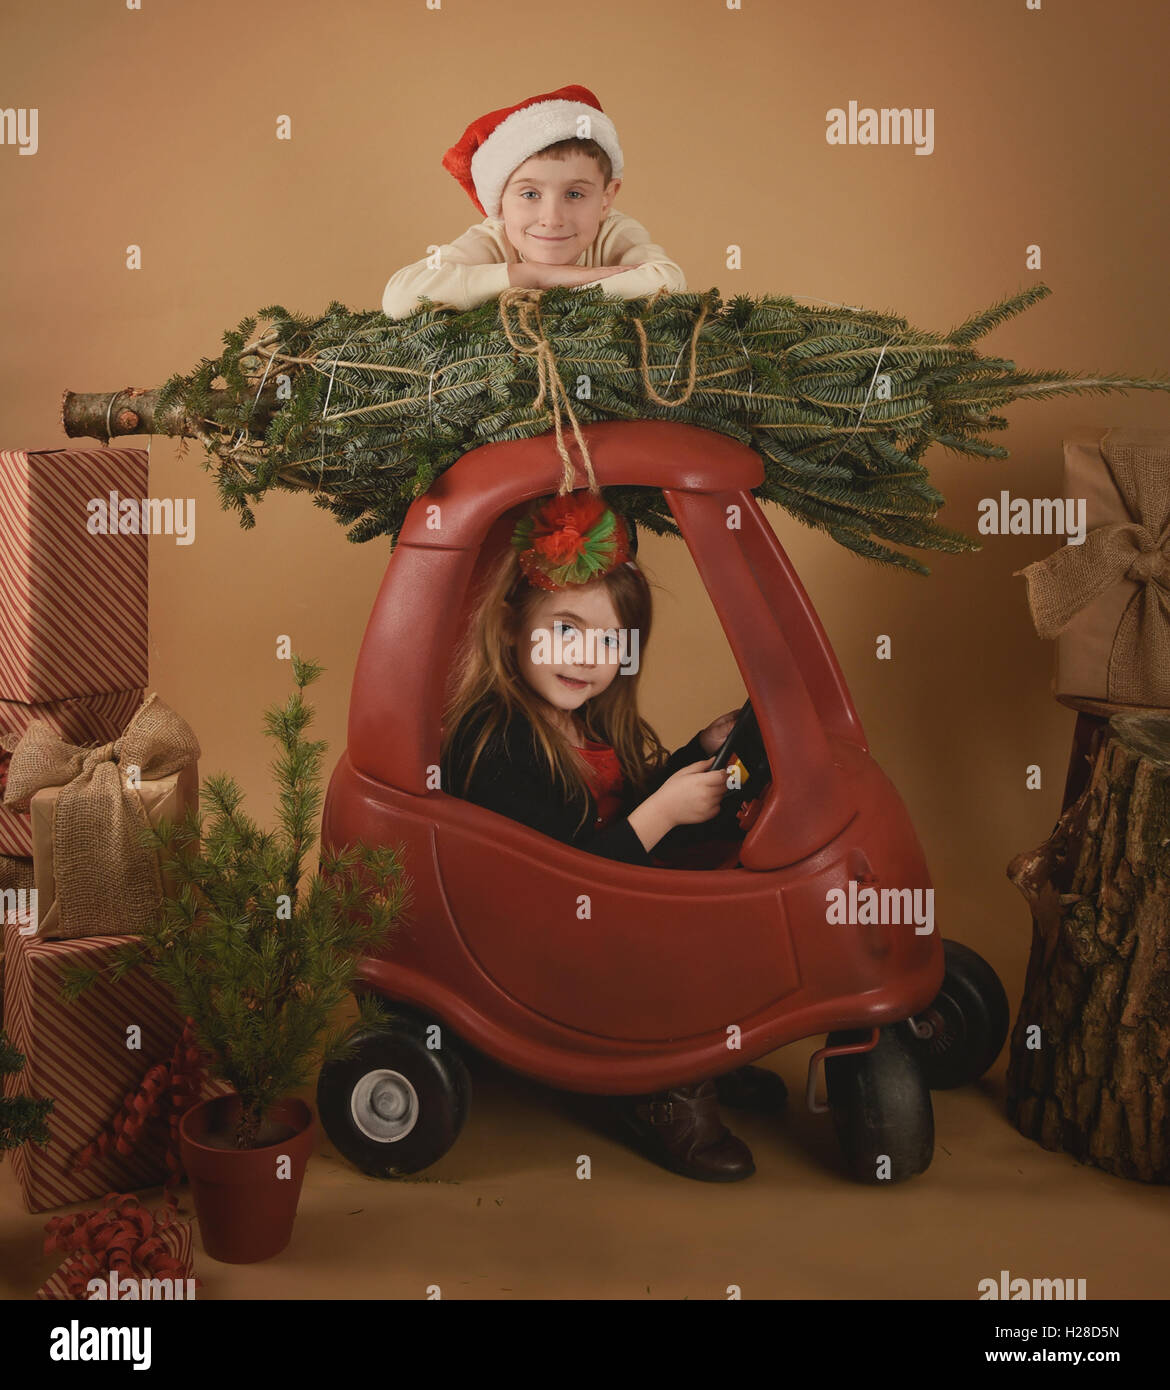 Two children are playing Christmas in a studio background with a tree and presents for a holiday or decoration concept. - Stock Image